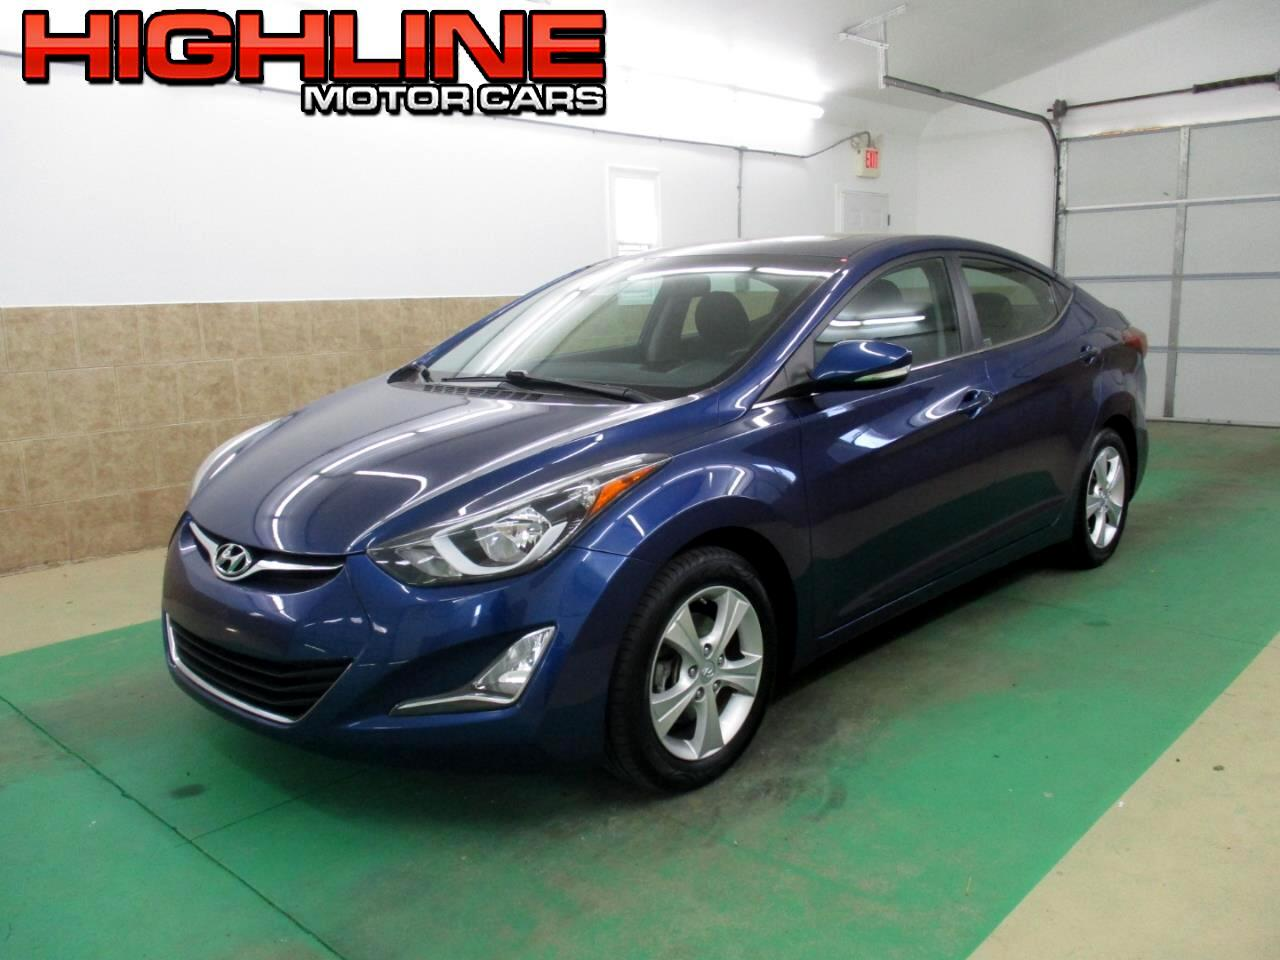 2016 Hyundai Elantra 4dr Sdn Auto Value Edition (Alabama Plant)